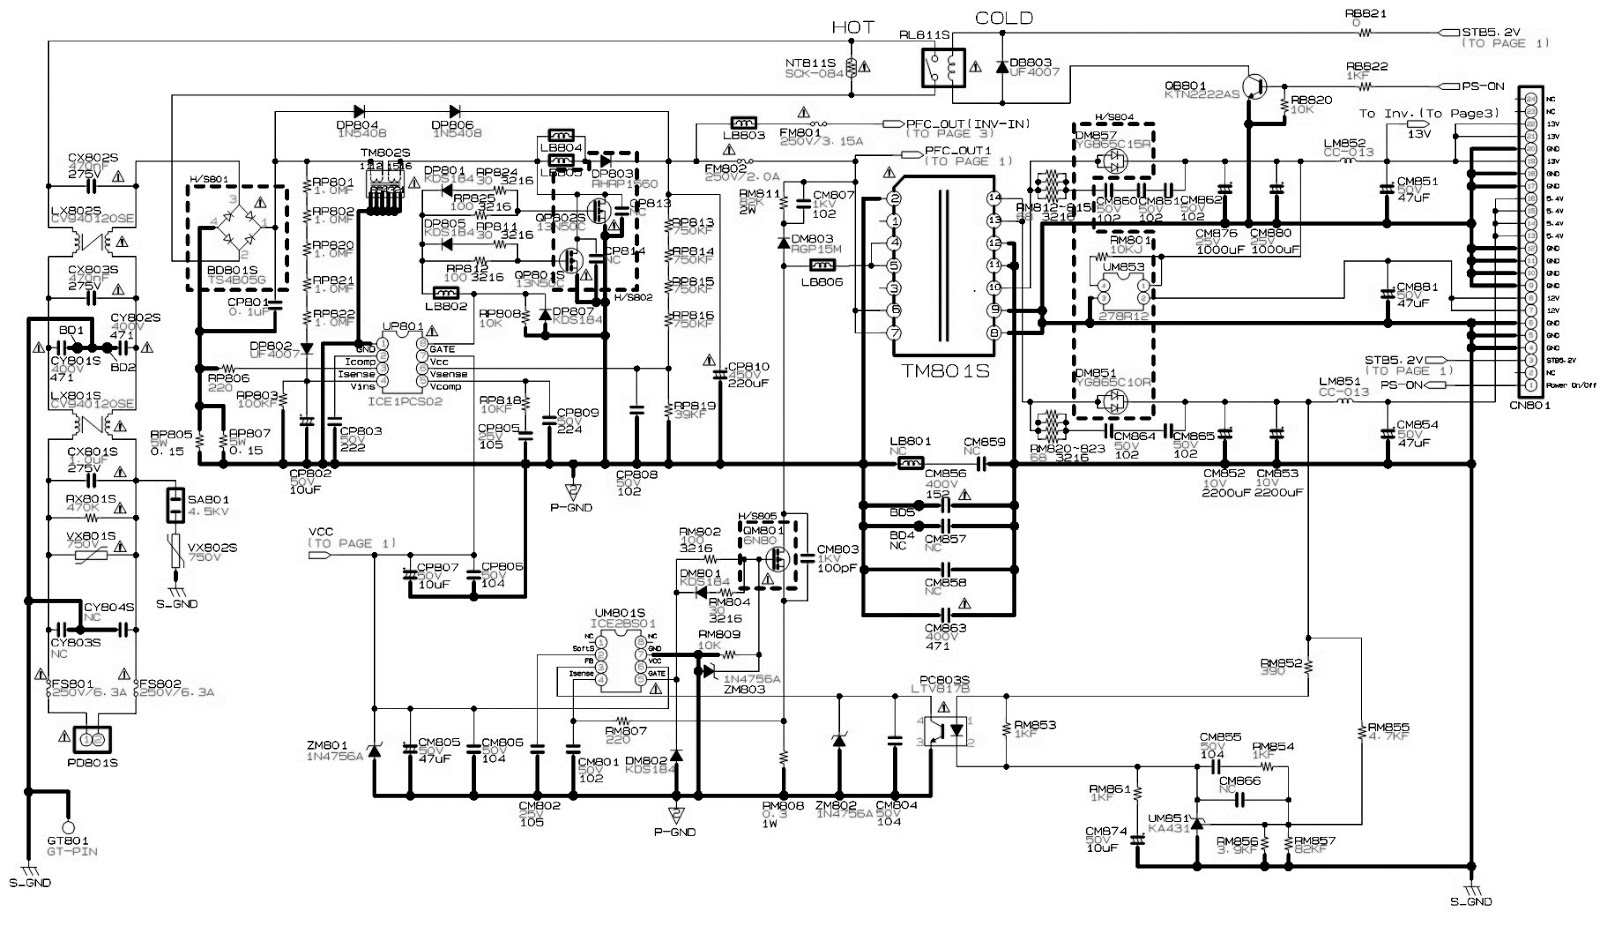 BN44 00165A SAMSUNG LED LCD TV SMPS CIRCUIT DIAGRAM